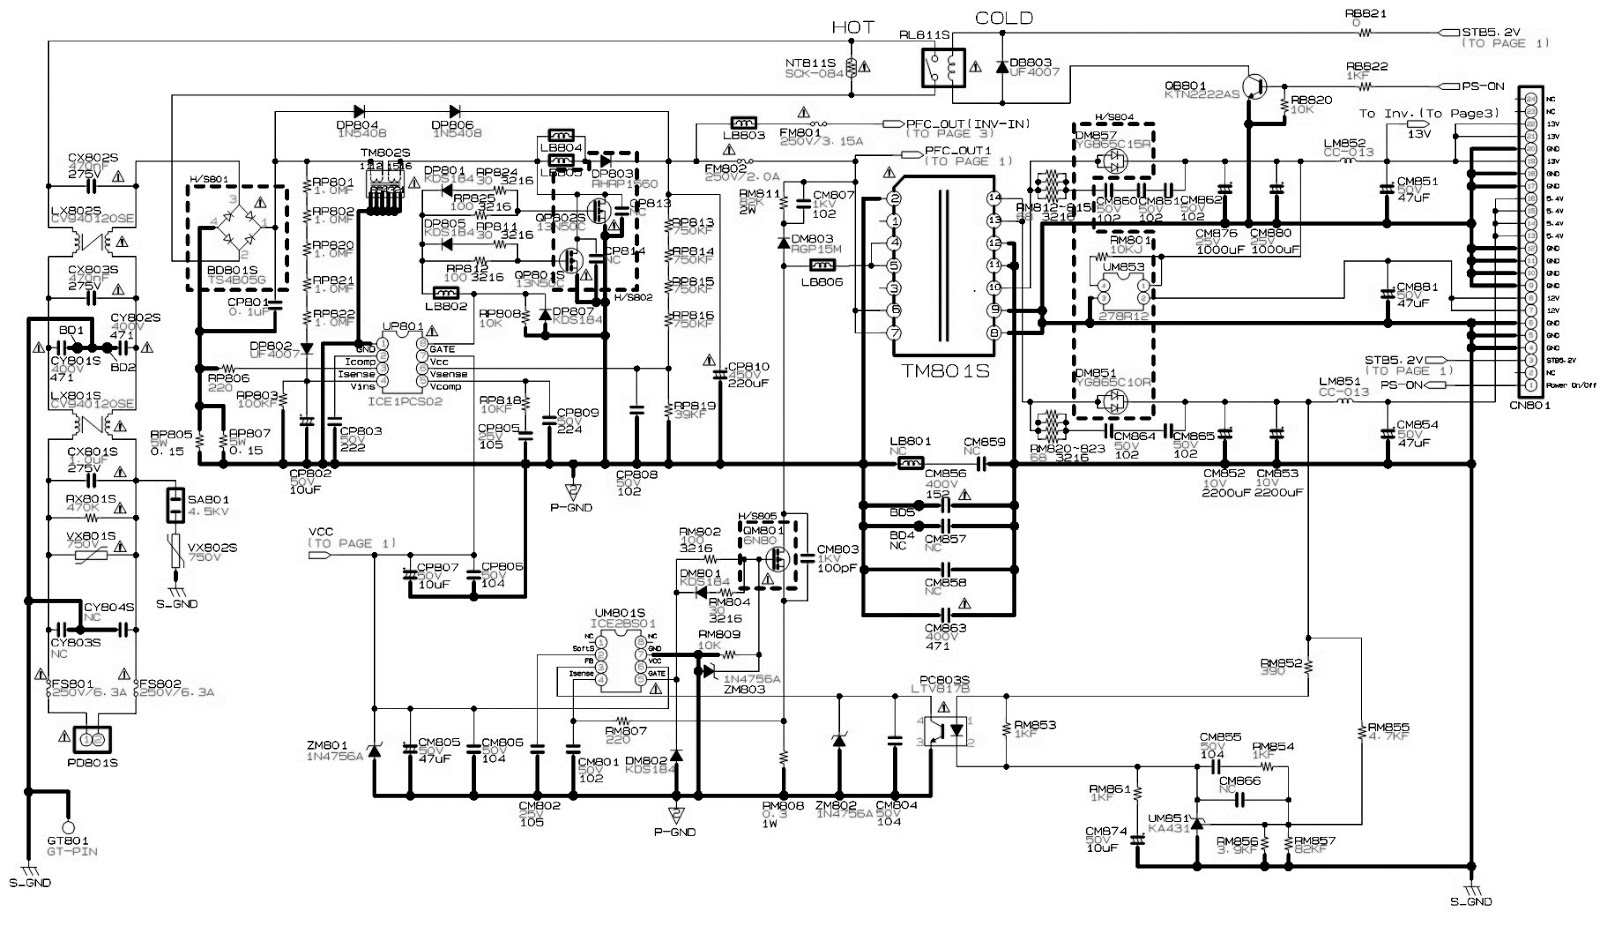 BN44 00165A SAMSUNG LED LCD TV SMPS CIRCUIT DIAGRAM